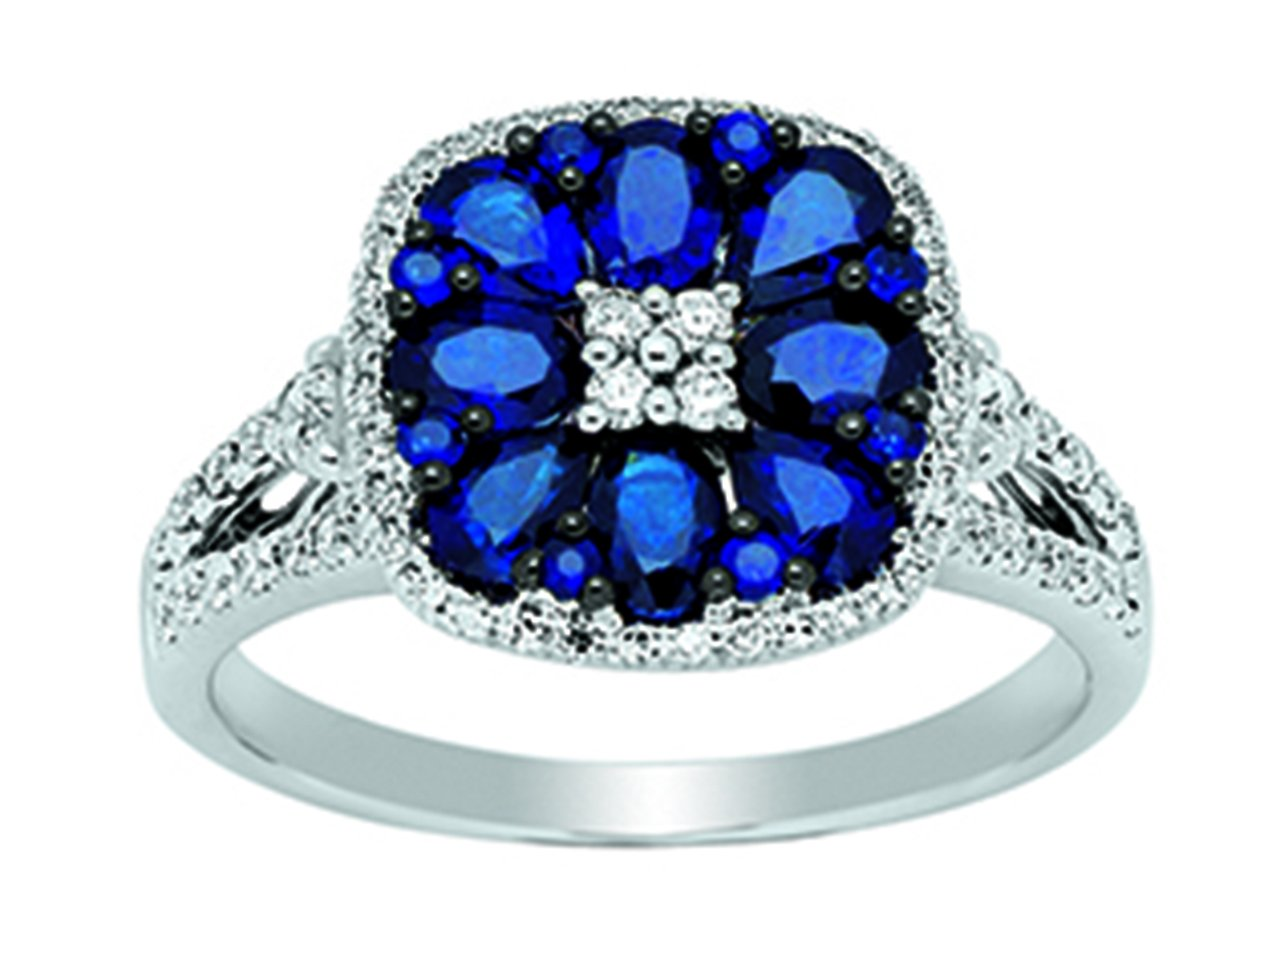 Bague Or girs 18k, saphirs 1,60ct, diamants 0,63ct, doigt 56